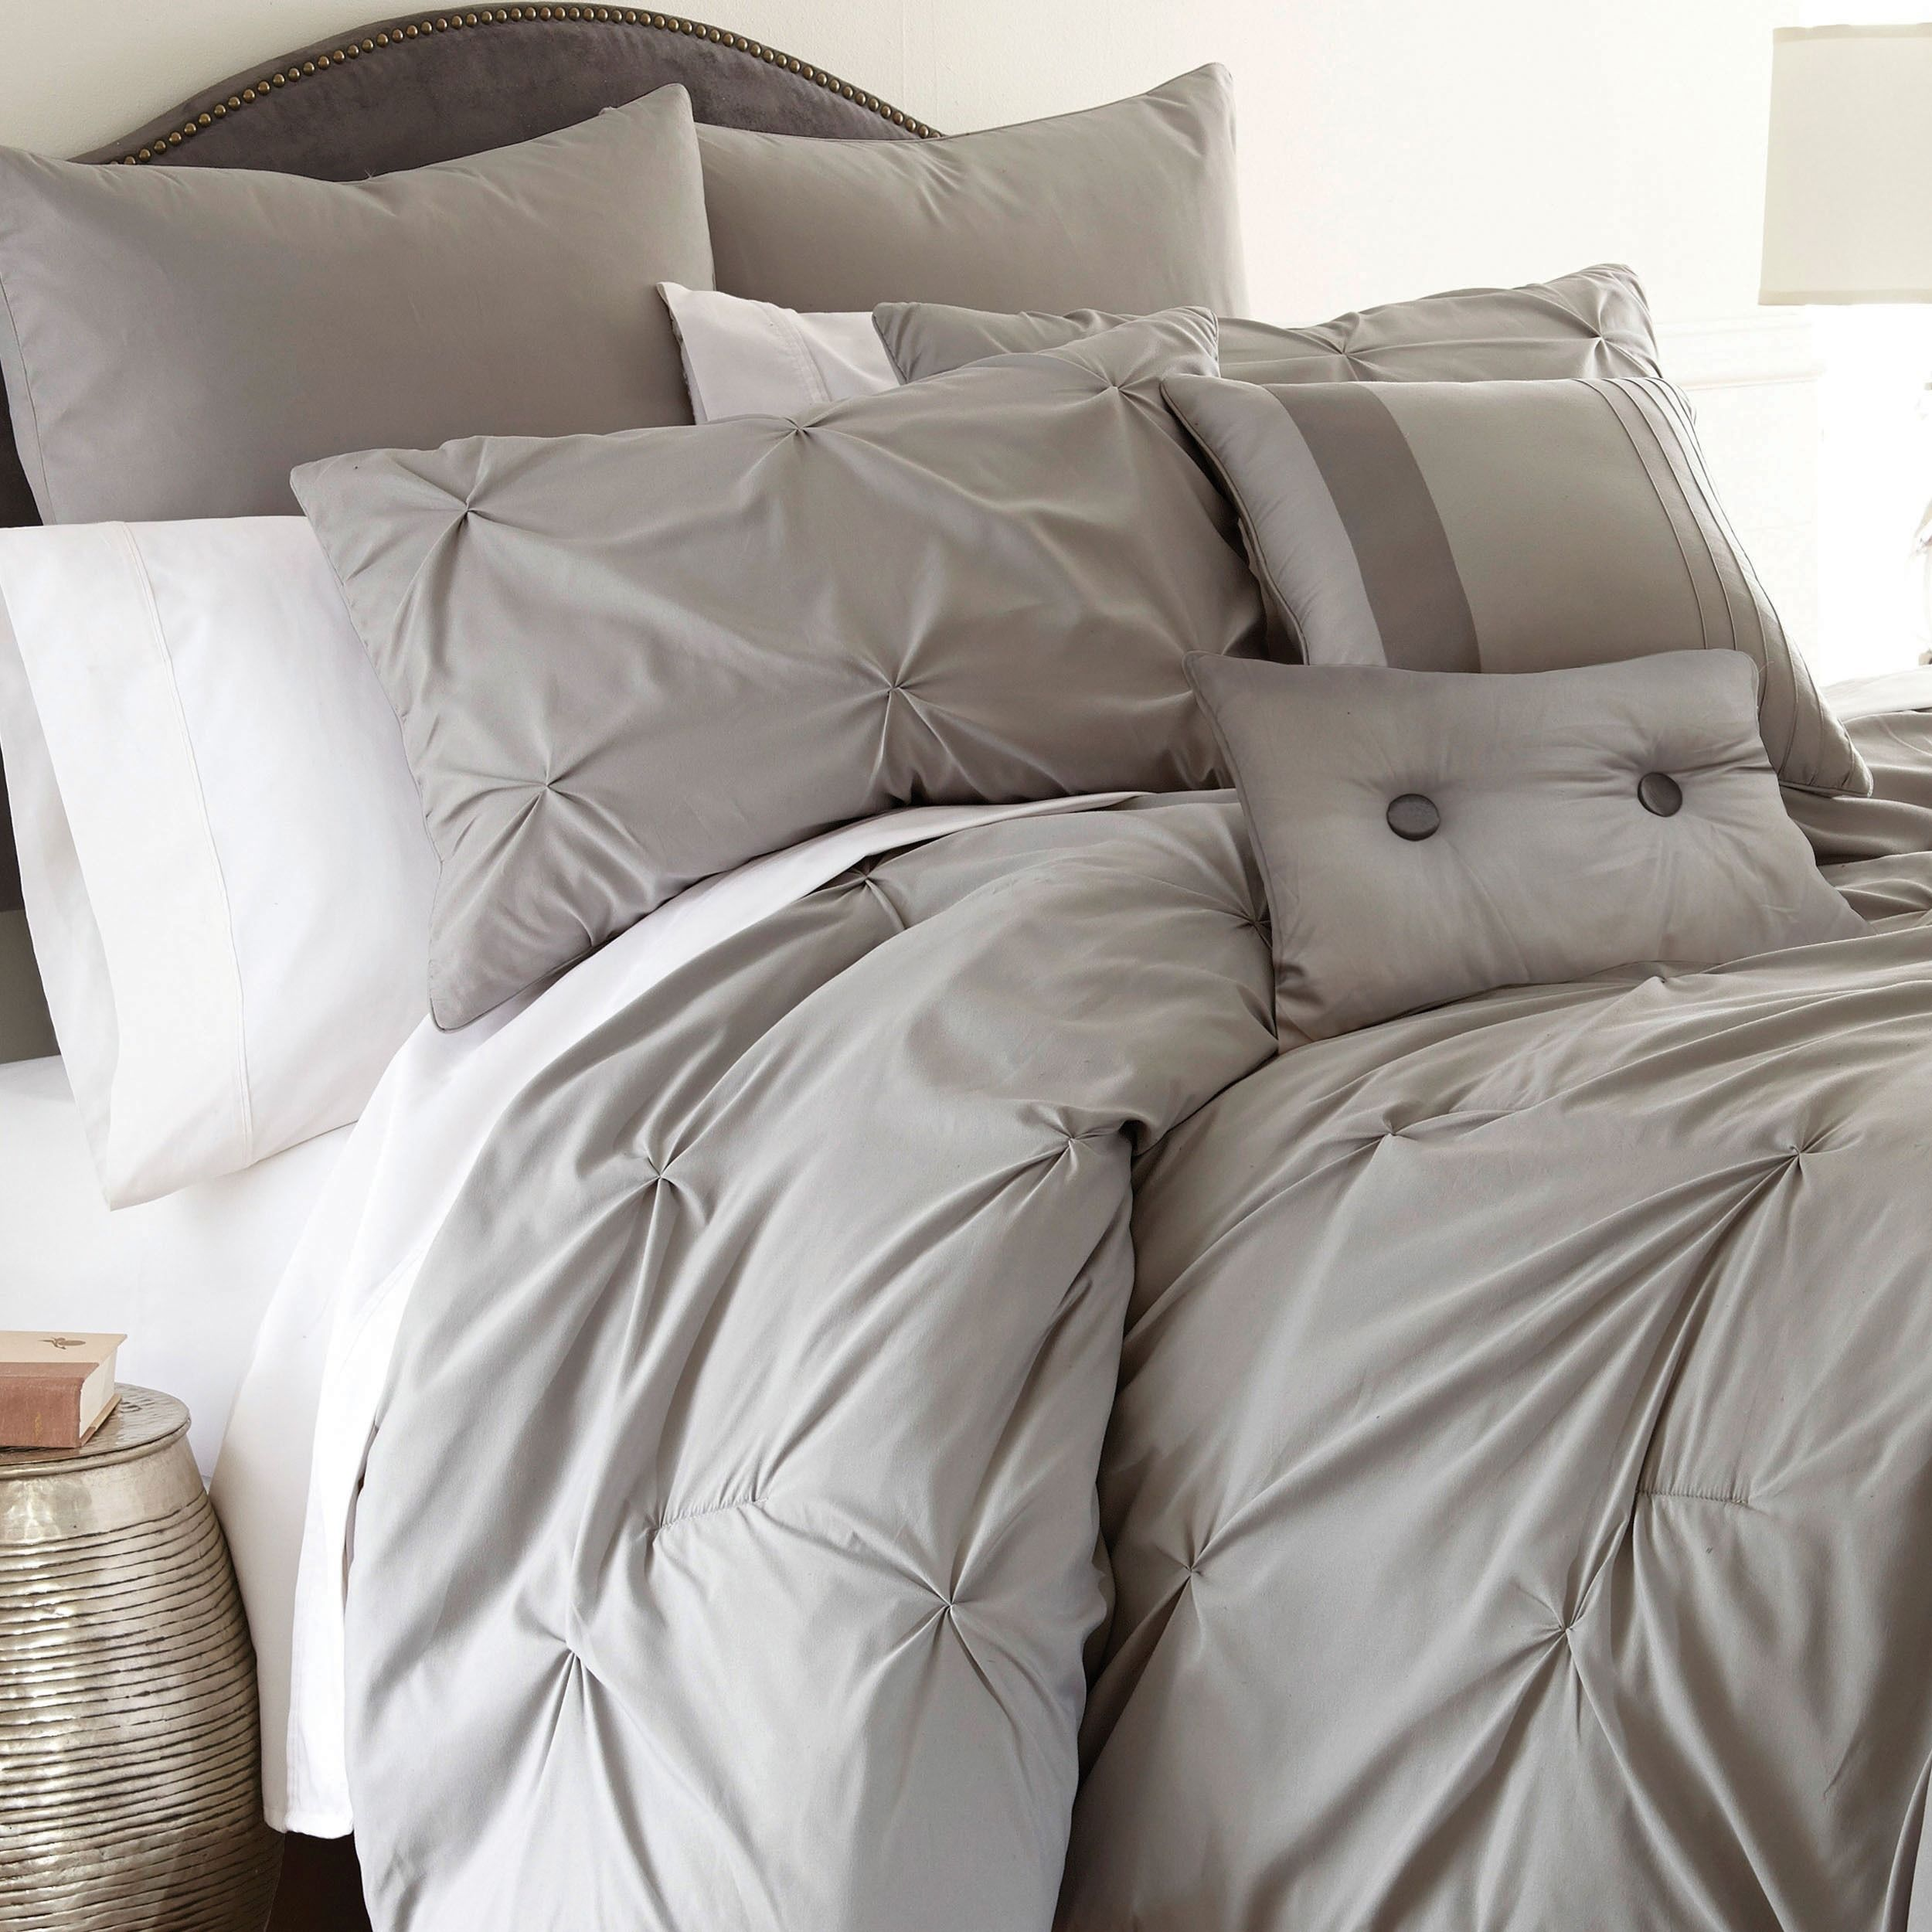 148 Best Linen Images On Pinterest: Best 25+ Luxury Comforter Sets Ideas On Pinterest